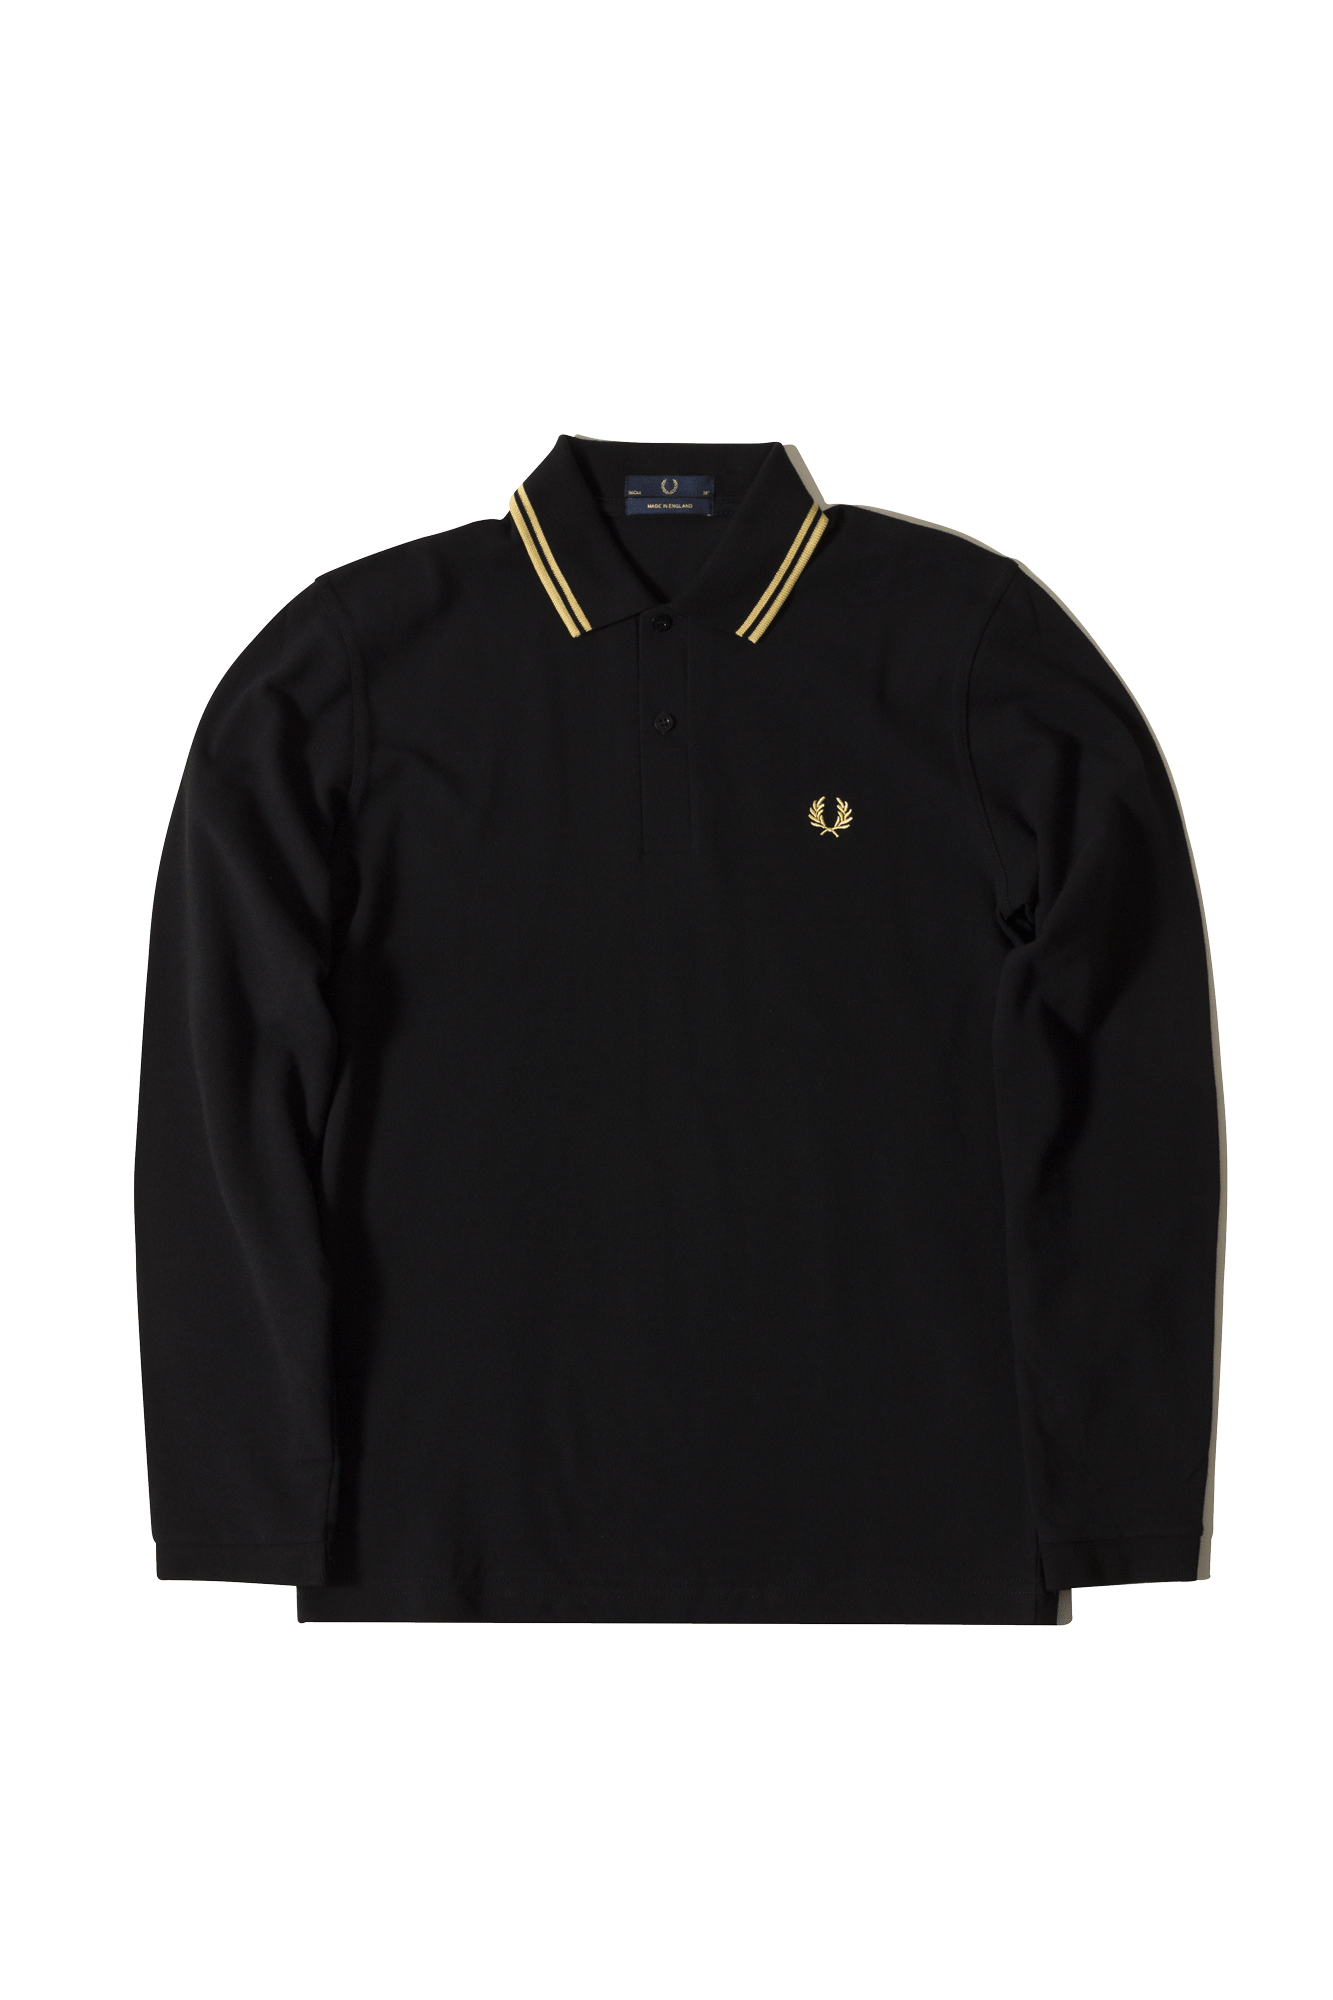 Fred Perry Polo L/S Twin Tipped FP Shirt Black M7115157#000#C0010#44 - One Block Down